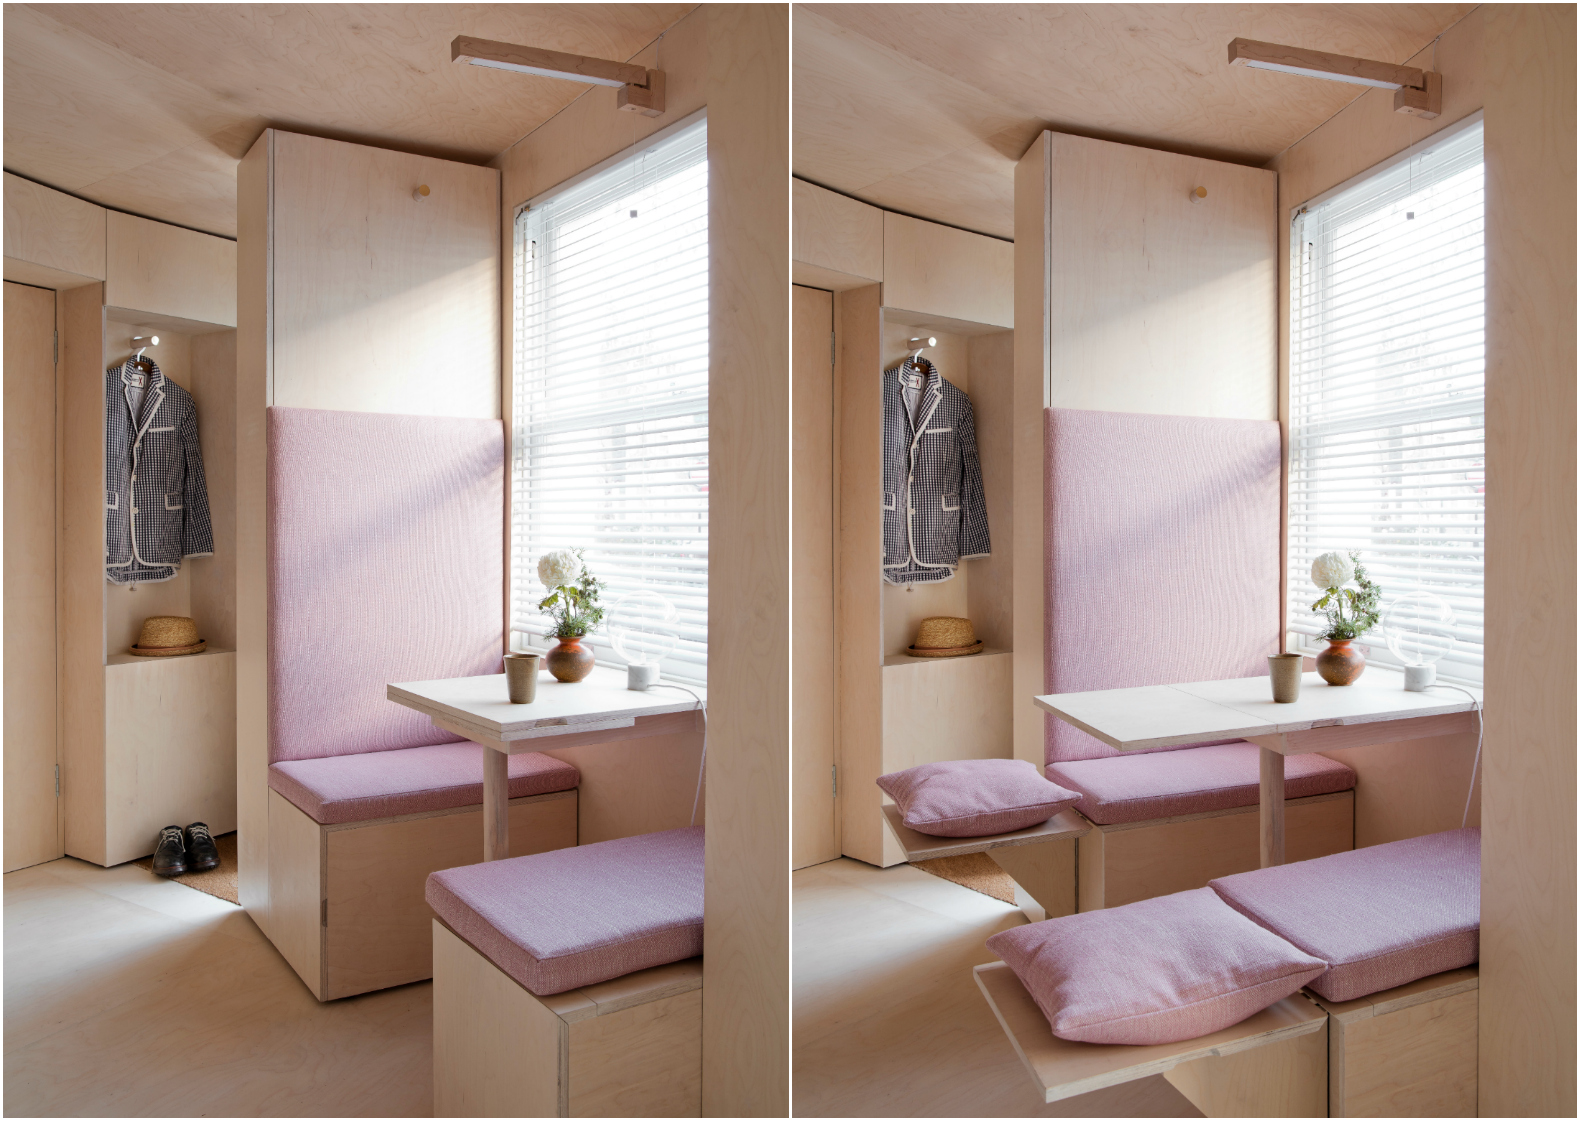 Plywood Furniture London S Smallest House Uses Flexible Plywood Furniture To